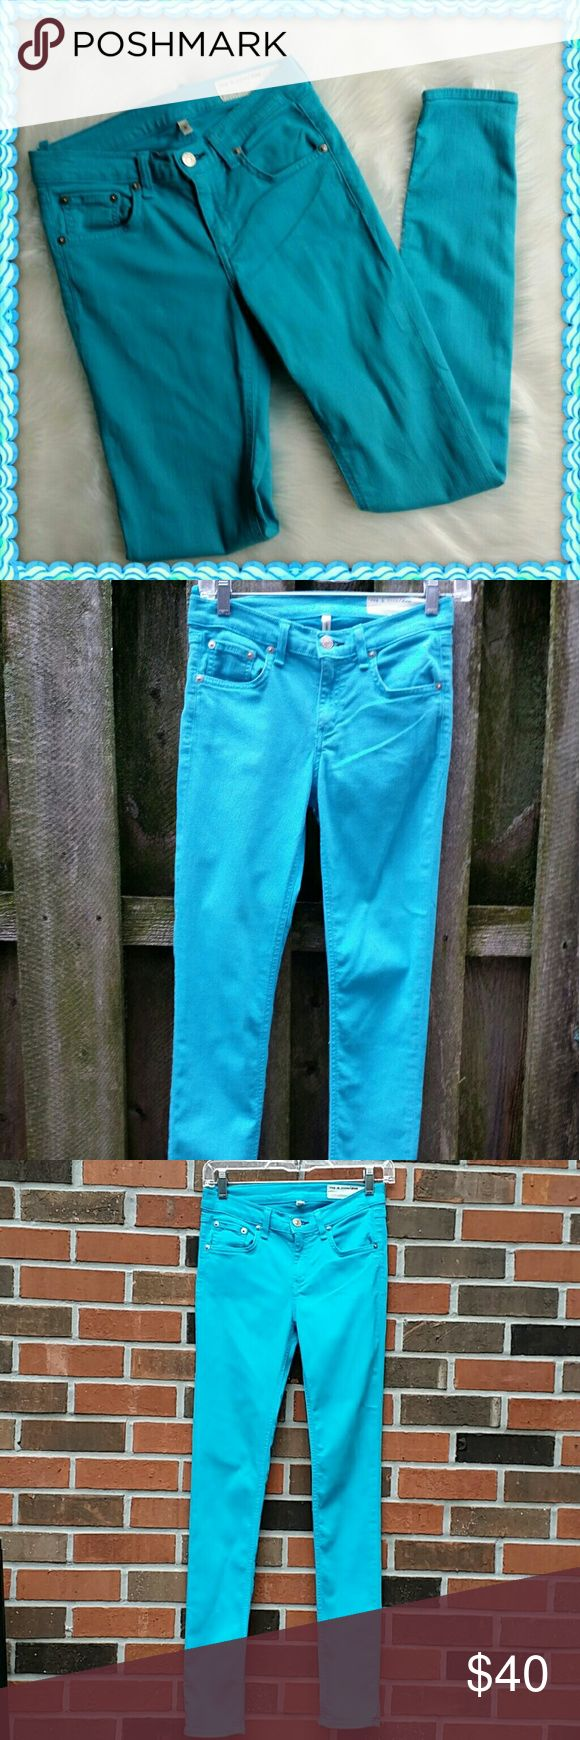 "Rag & Bone skinny pants size 25 Cotton, tencel and spandex.  Robins egg blue . 13.5 "" across the waist.  8 "" from the waist to the crotch.  31 "" from the crotch to the hem.  5 "" leg opening.  Very good condition. rag & bone Pants Skinny"